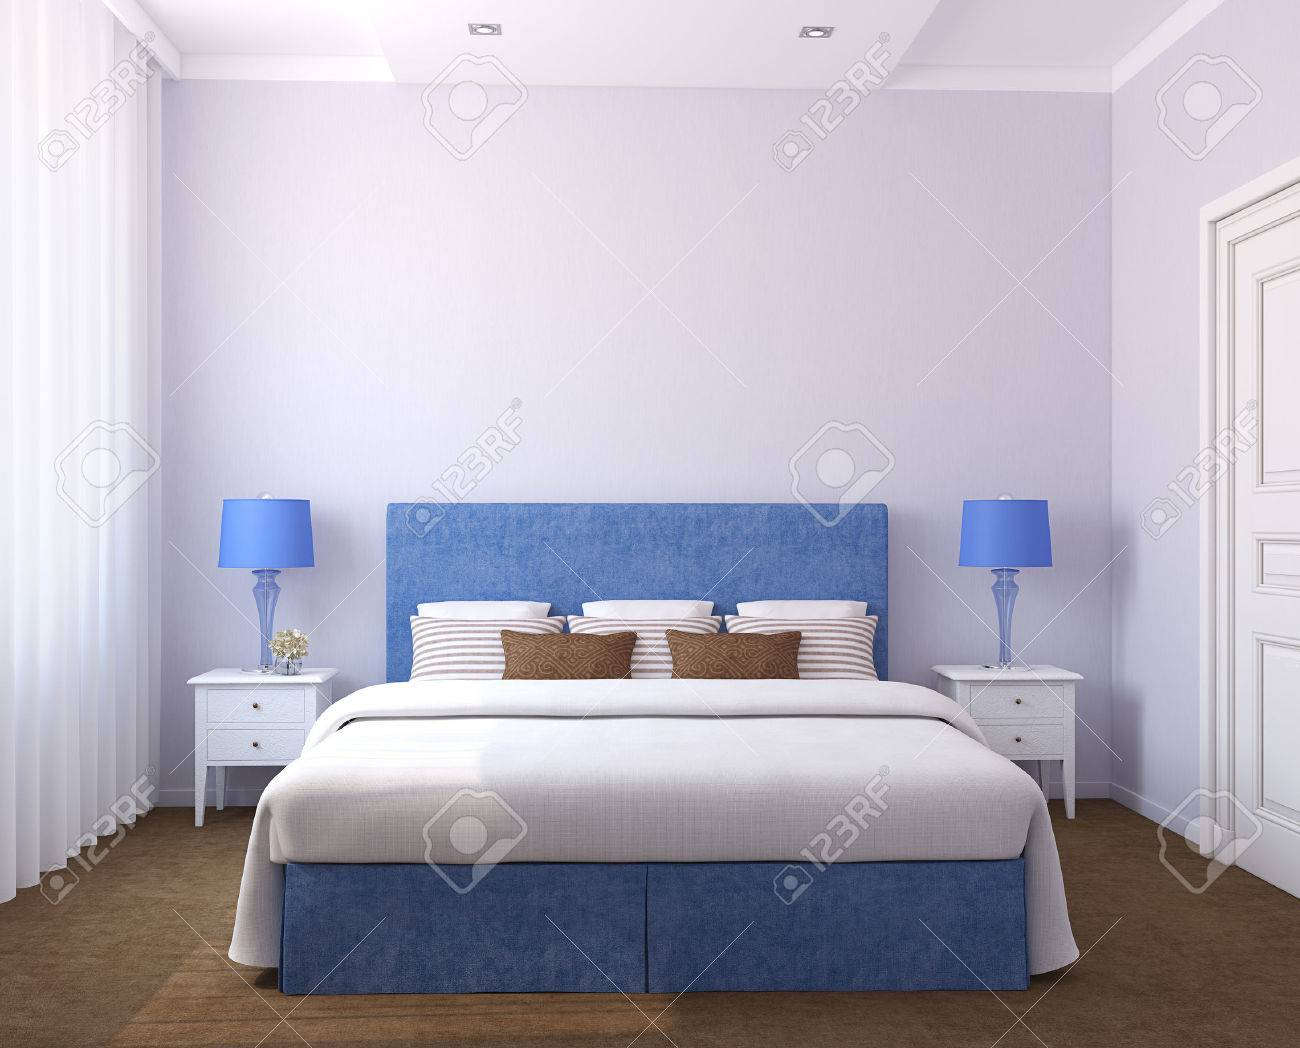 Beautiful bedroom interiors - Beautiful Bedroom Interior 3d Render Photos On The Wall Was Made By Me